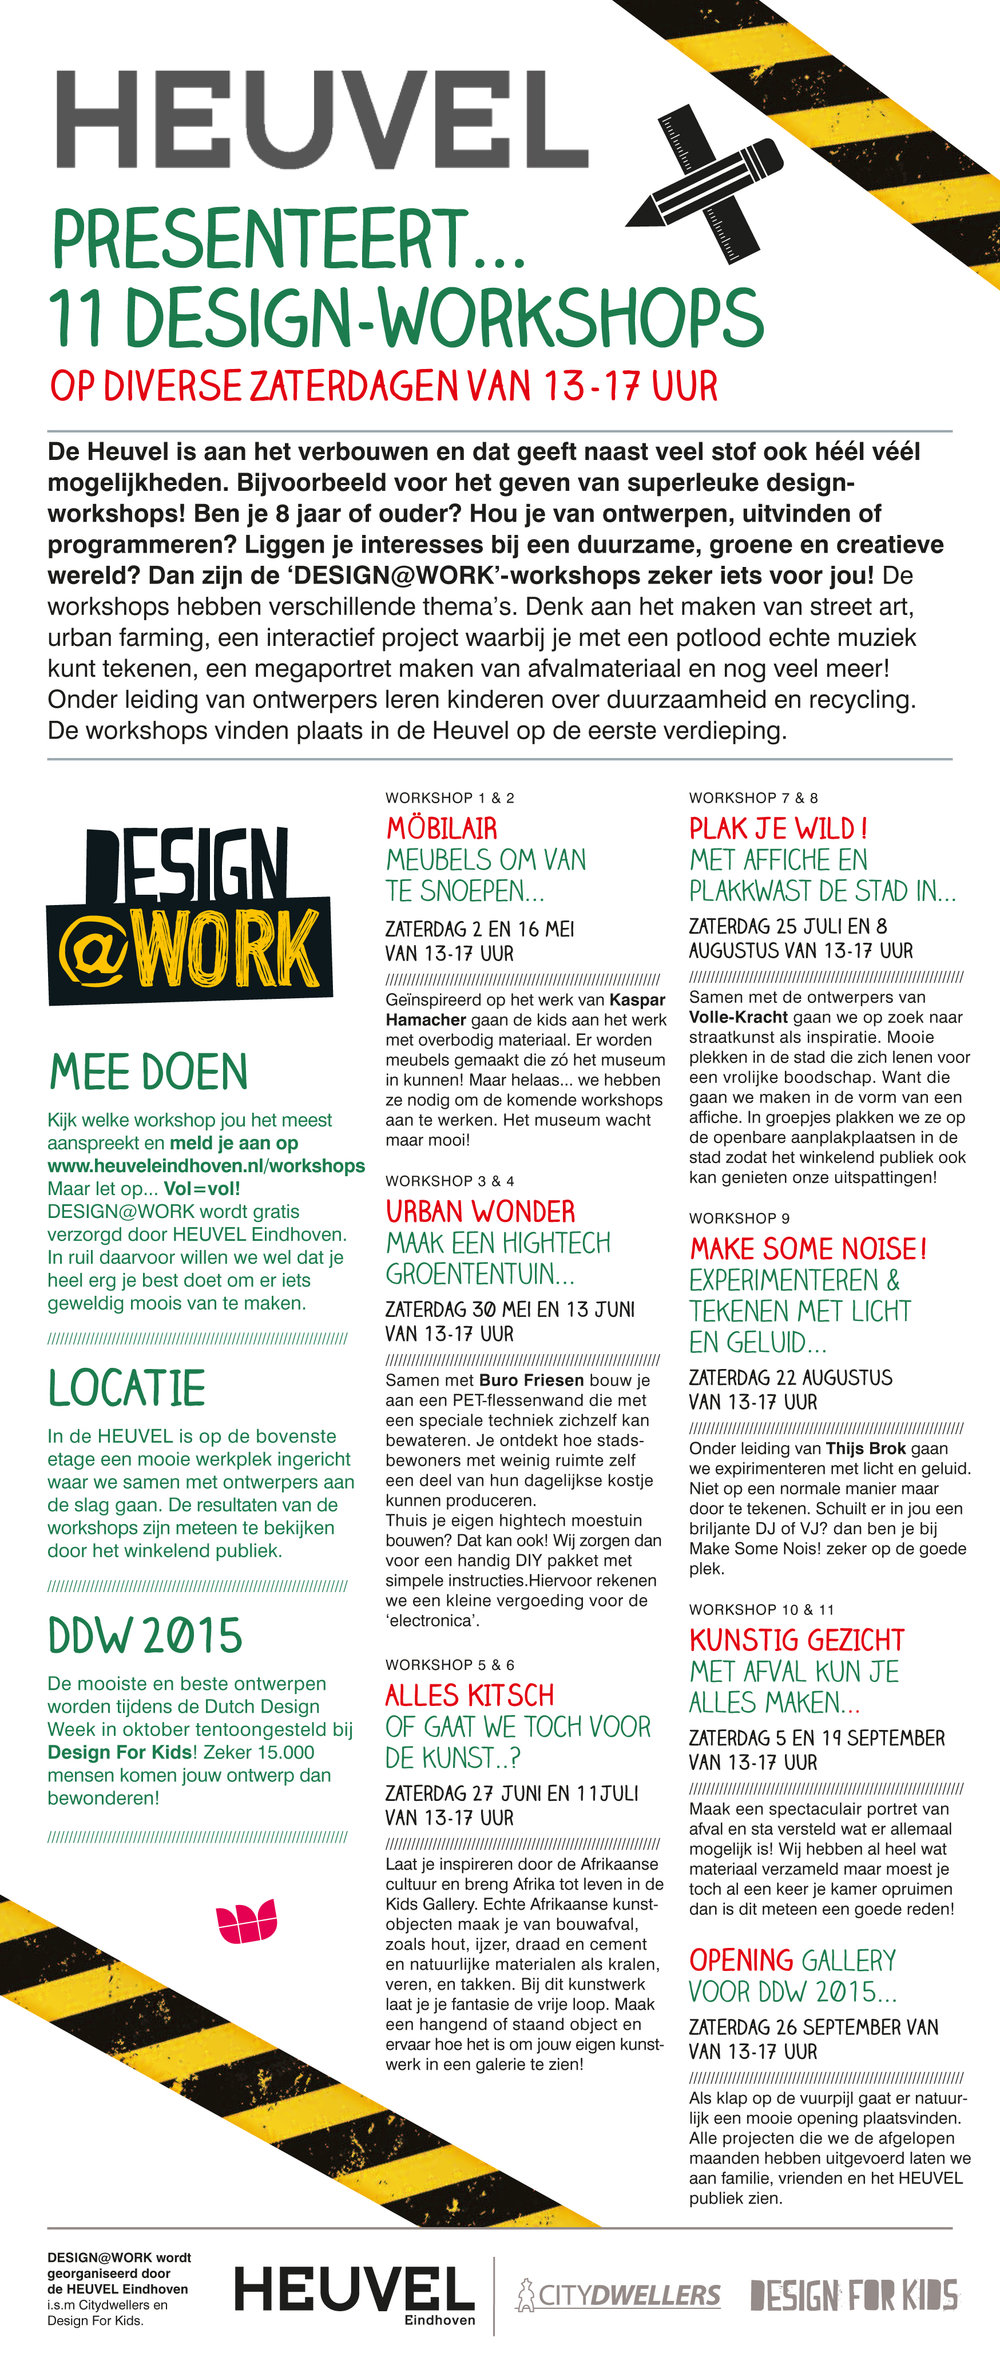 design@work_main_1-2.jpg